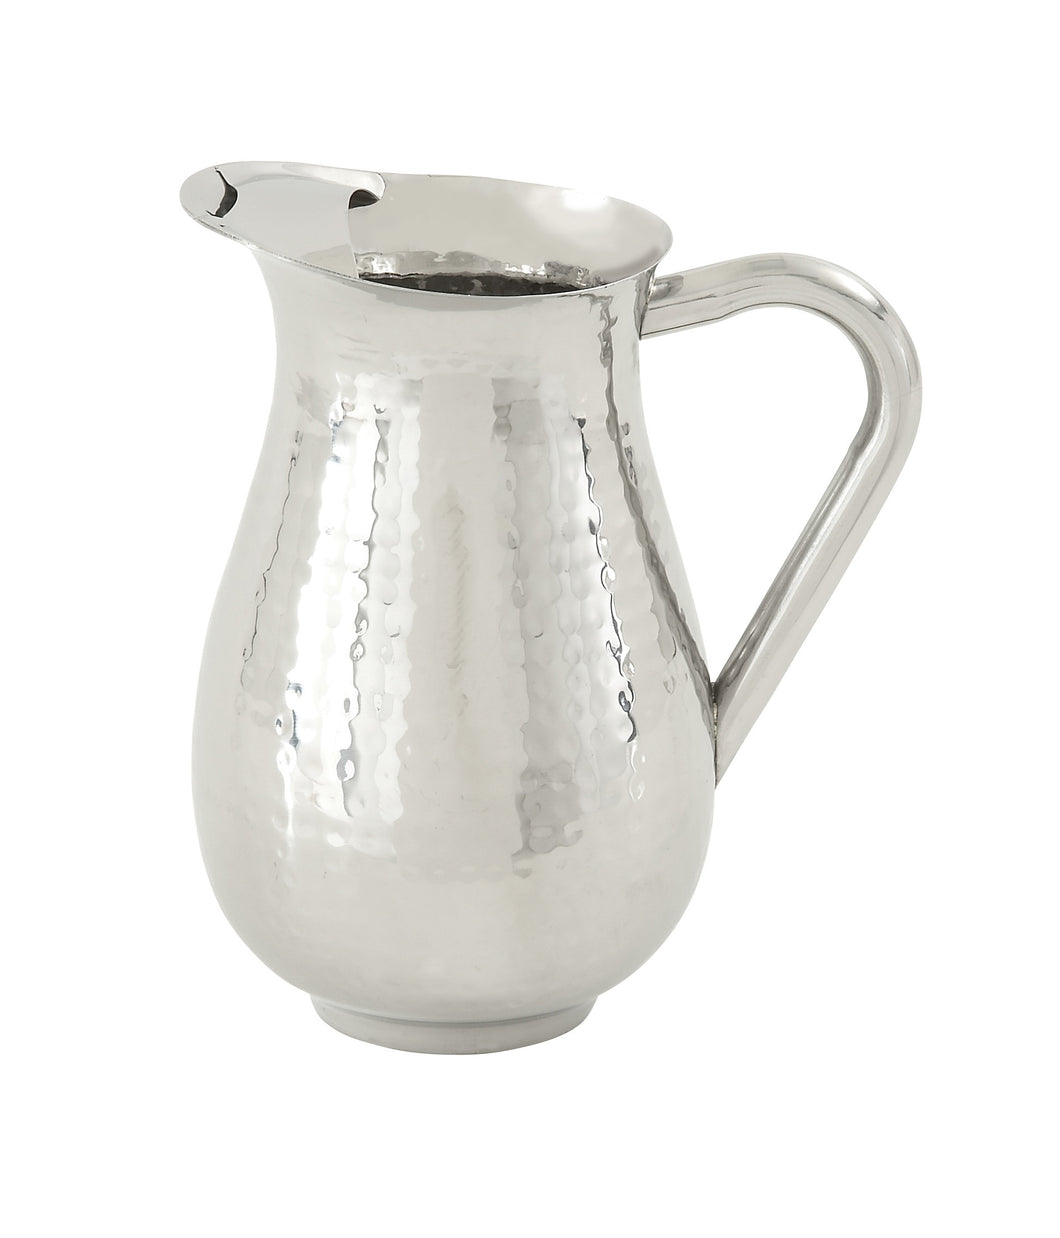 Modern Styled Steel Pitcher